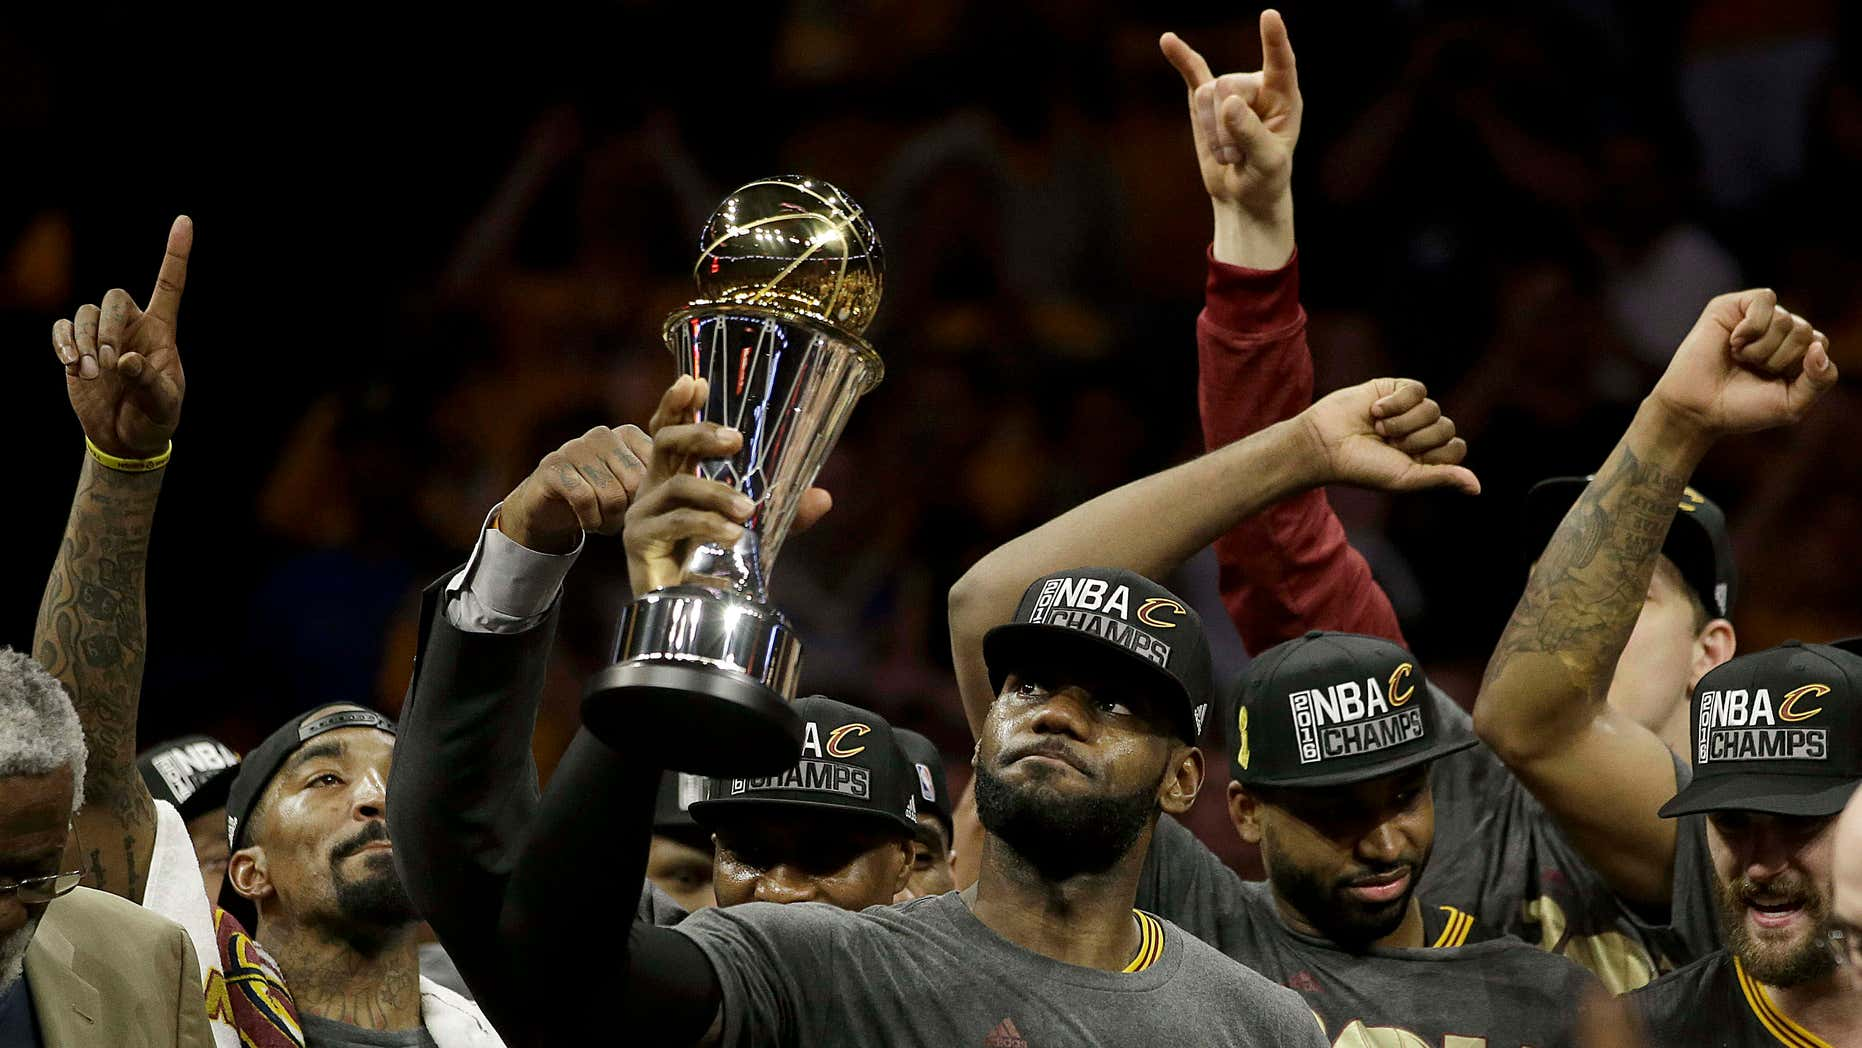 June 19, 2016: Cleveland Cavaliers forward LeBron James, center, celebrates with teammates after Game 7 of basketball's NBA Finals against the Golden State Warriors in Oakland, Calif.